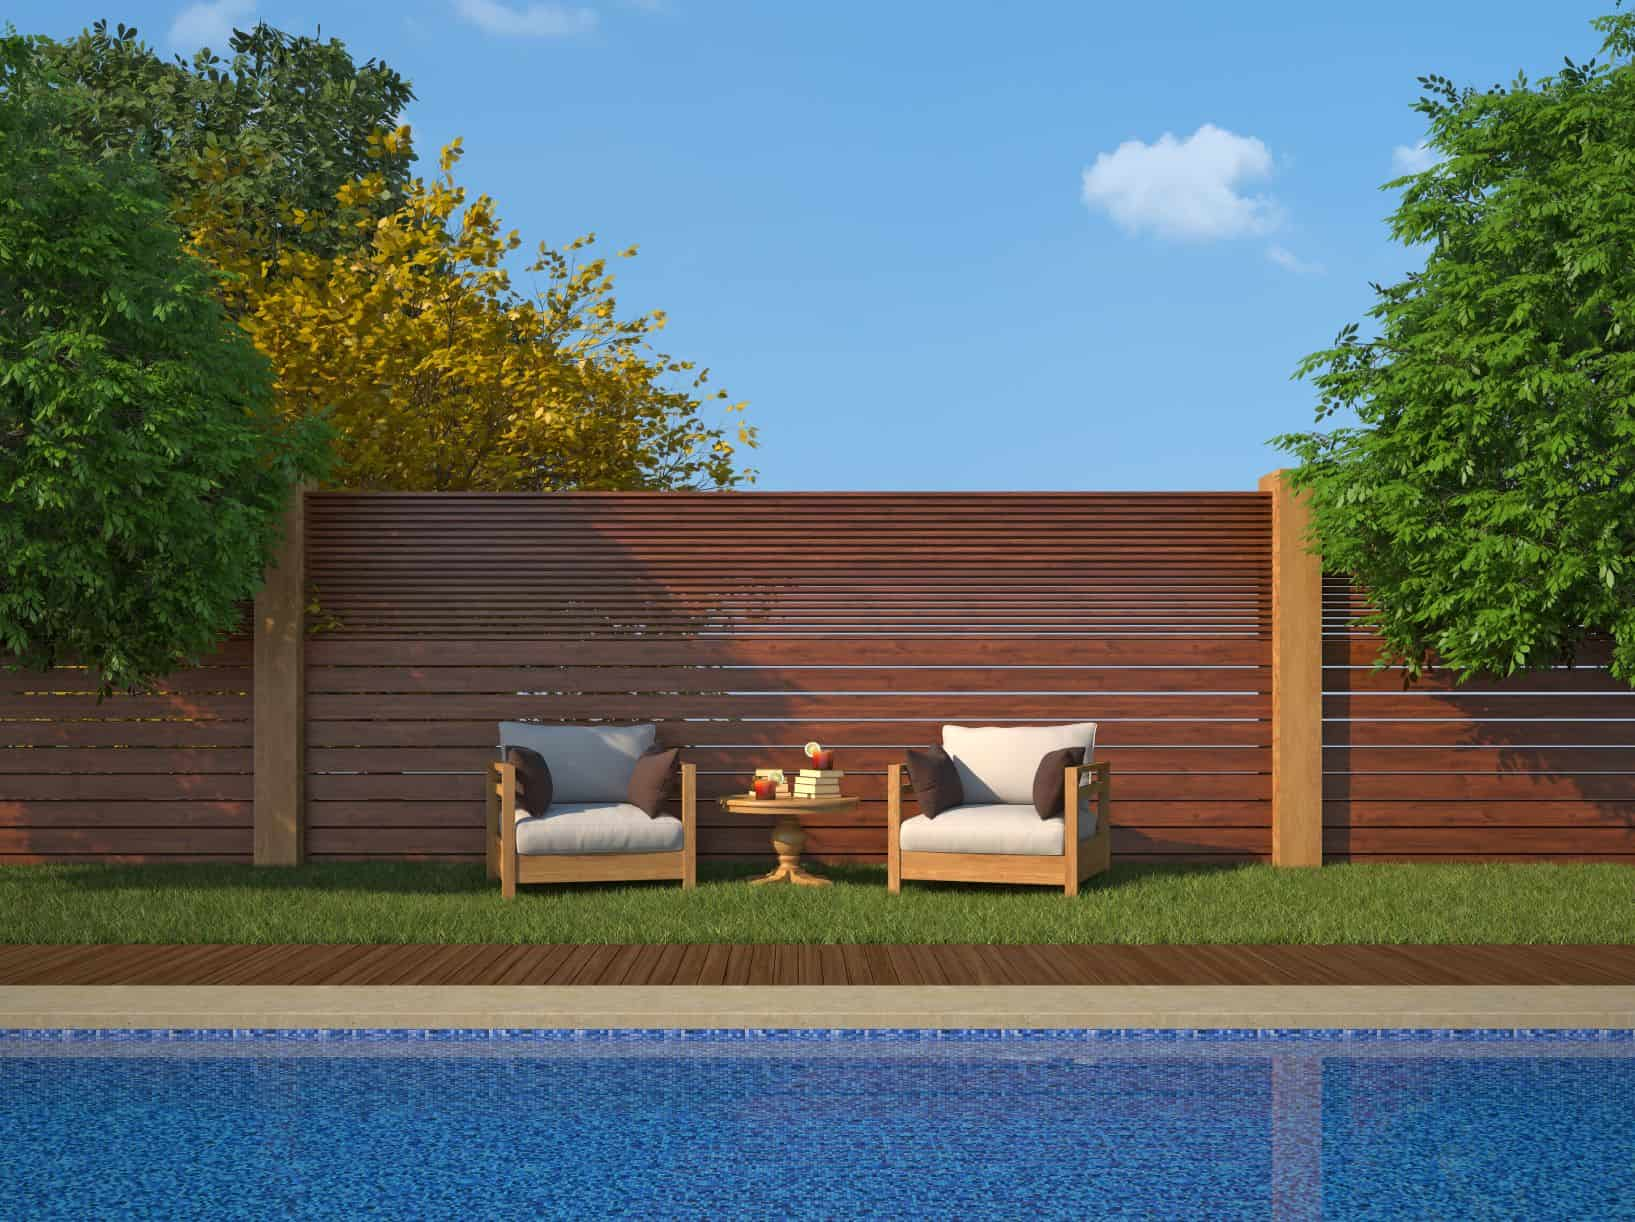 Privacy and pool fence